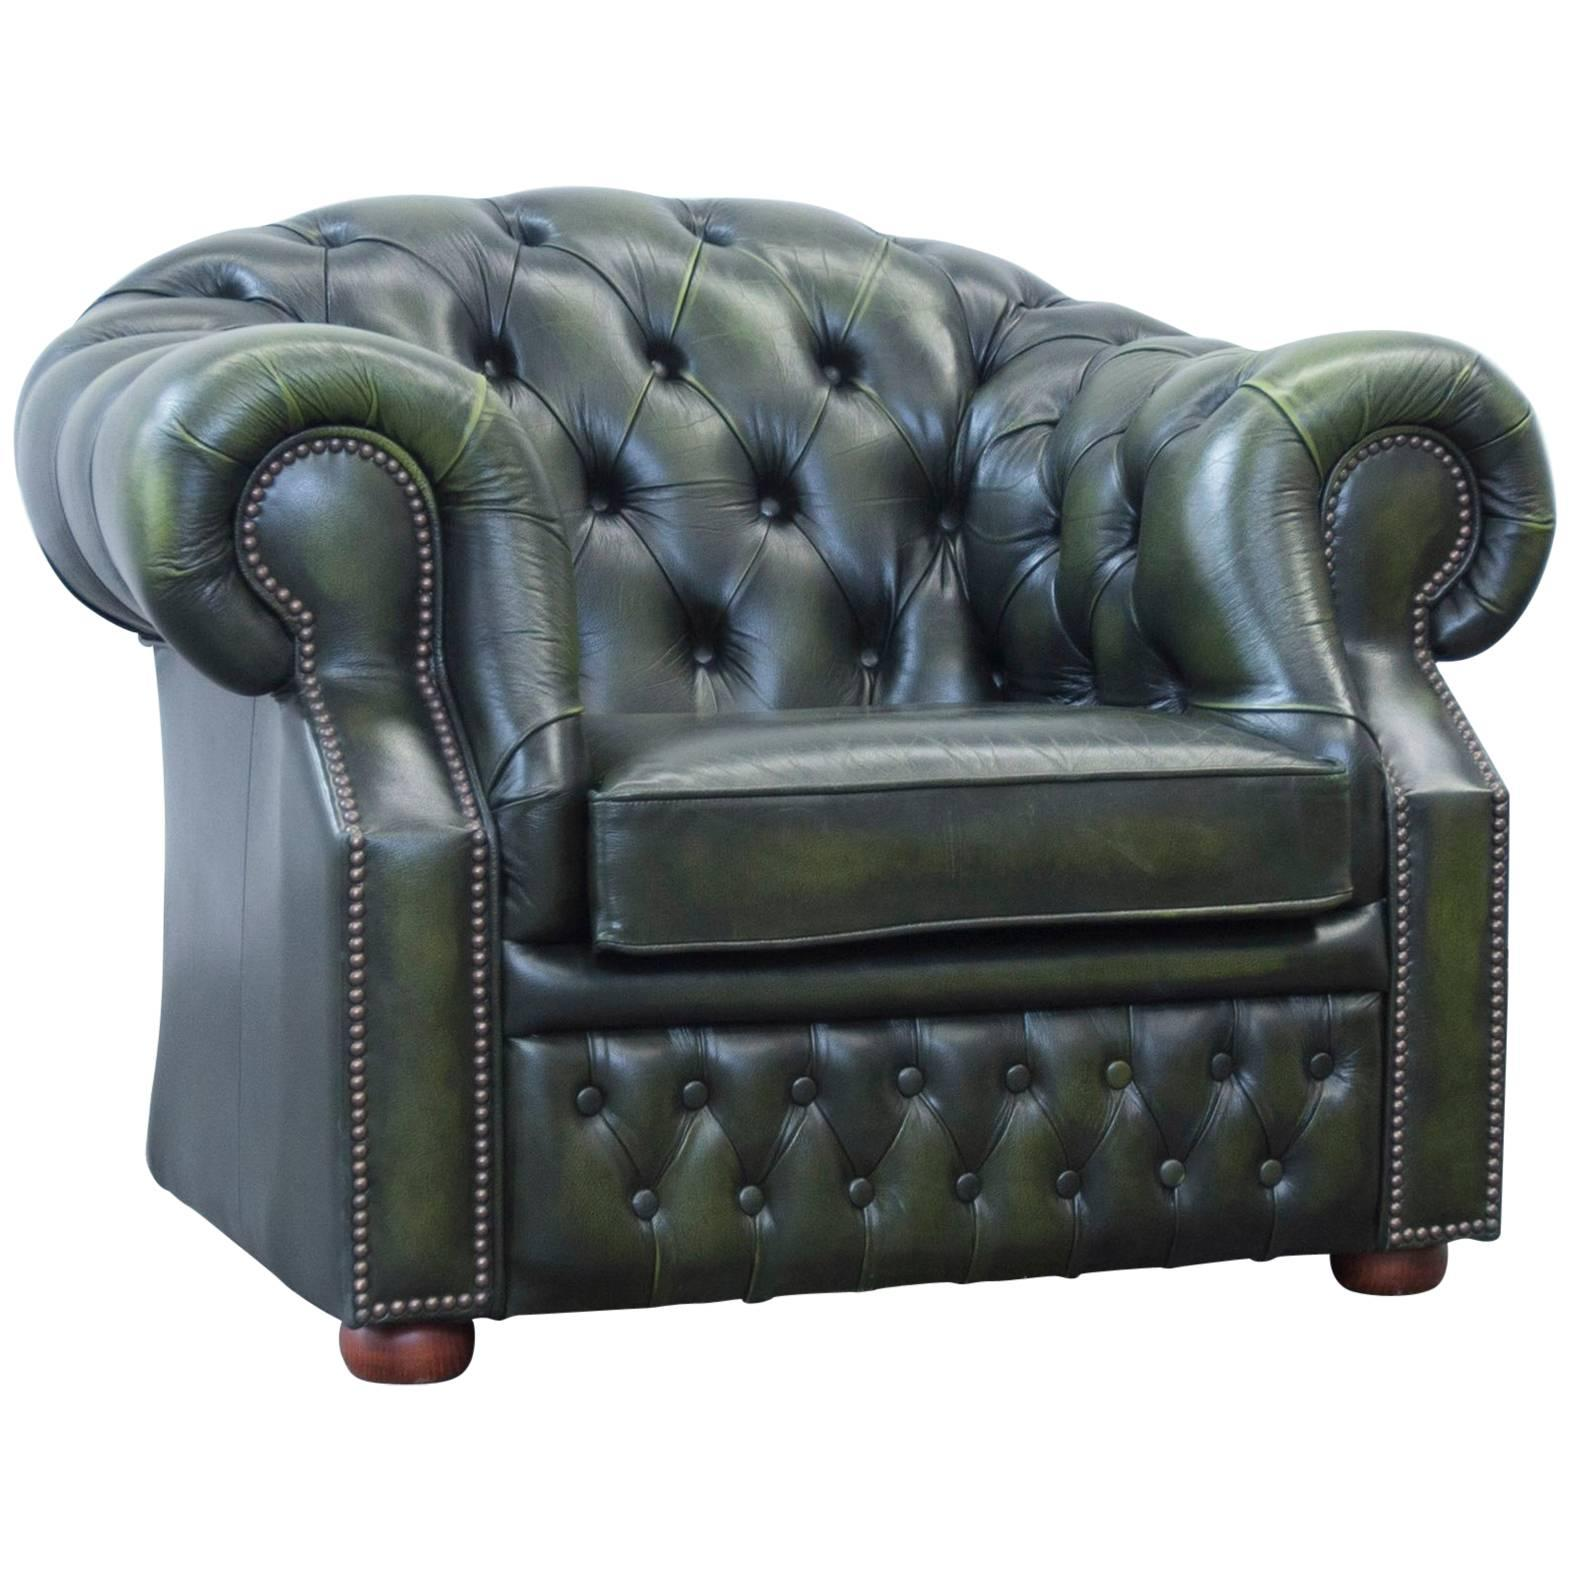 Centurion Chesterfield Armchair Green Leather One Seat Chair Vintage Retro 1